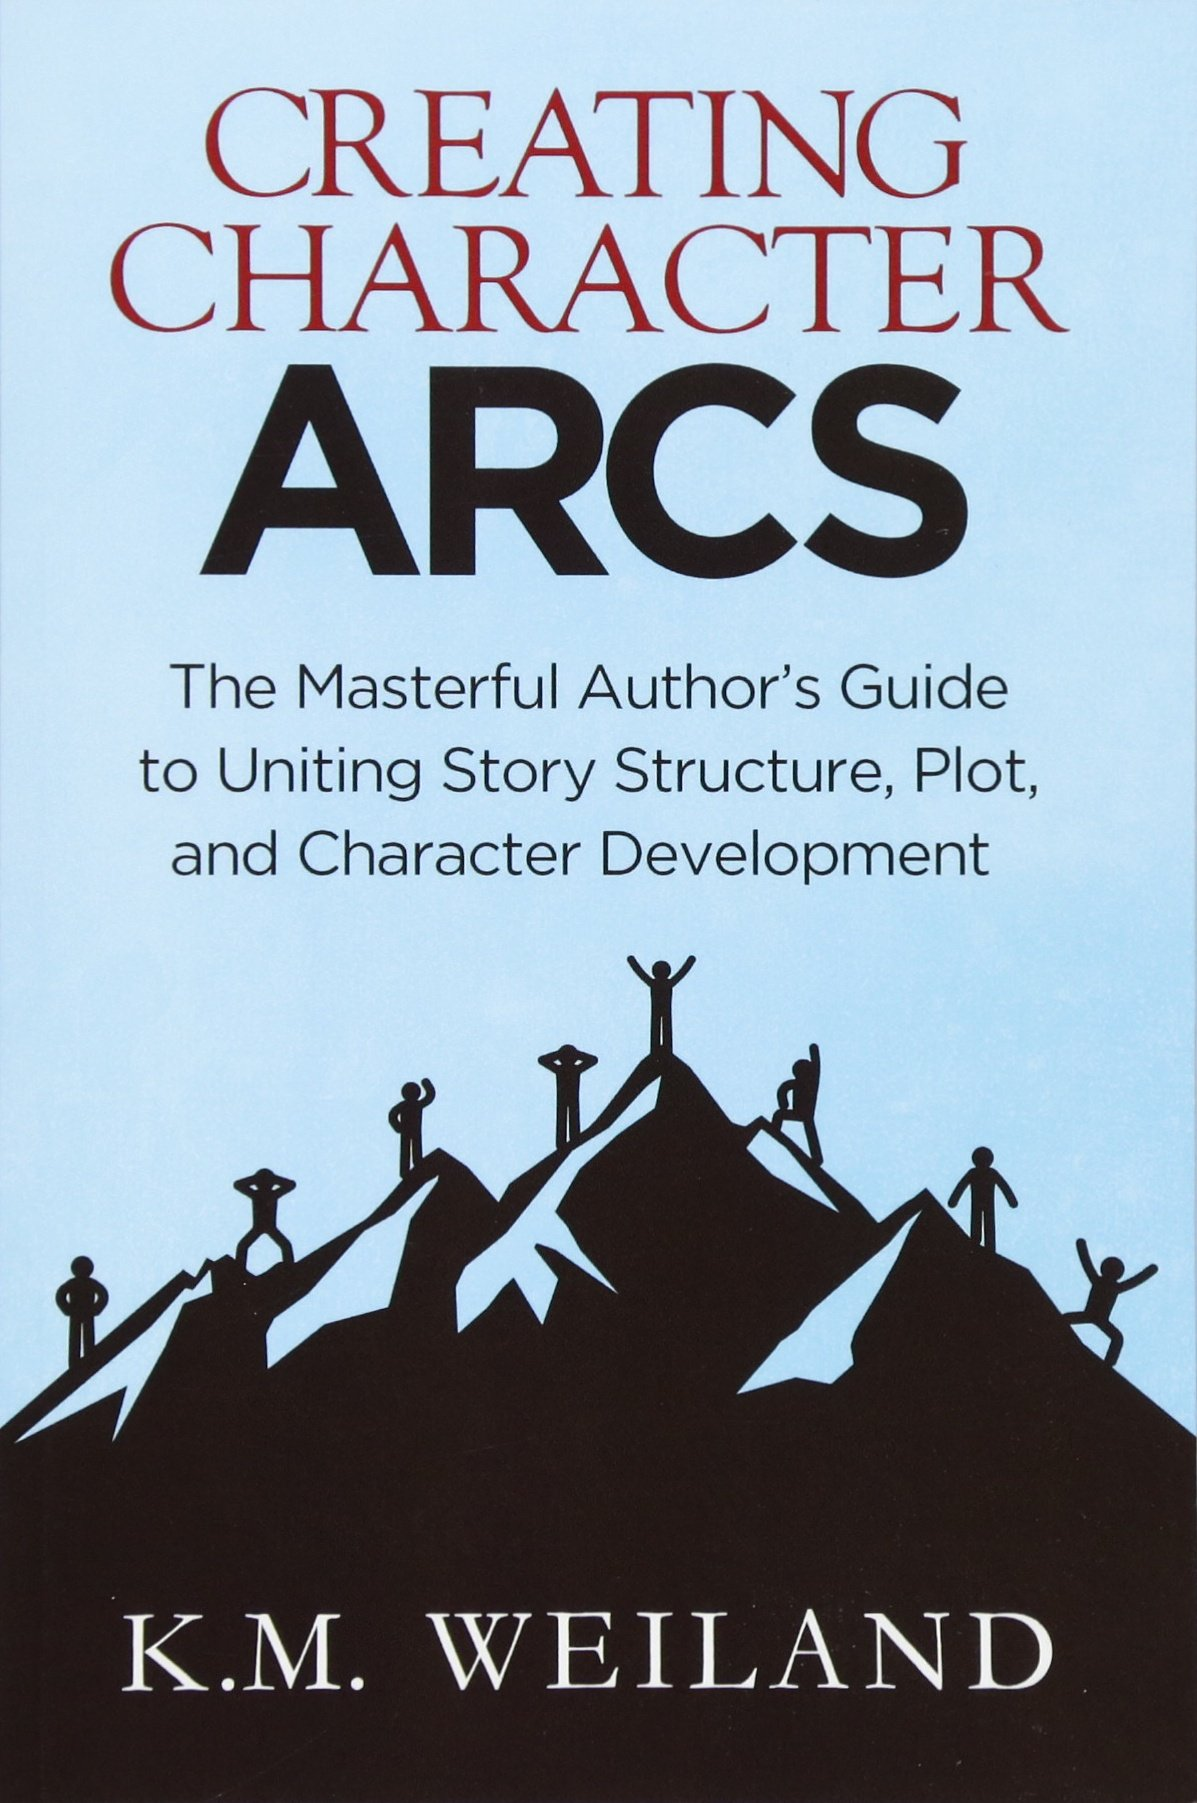 Creating Character Arcs: The Masterful Author's Guide to Uniting Story Structure (Helping Writers Become Authors) (Volume 7) pdf